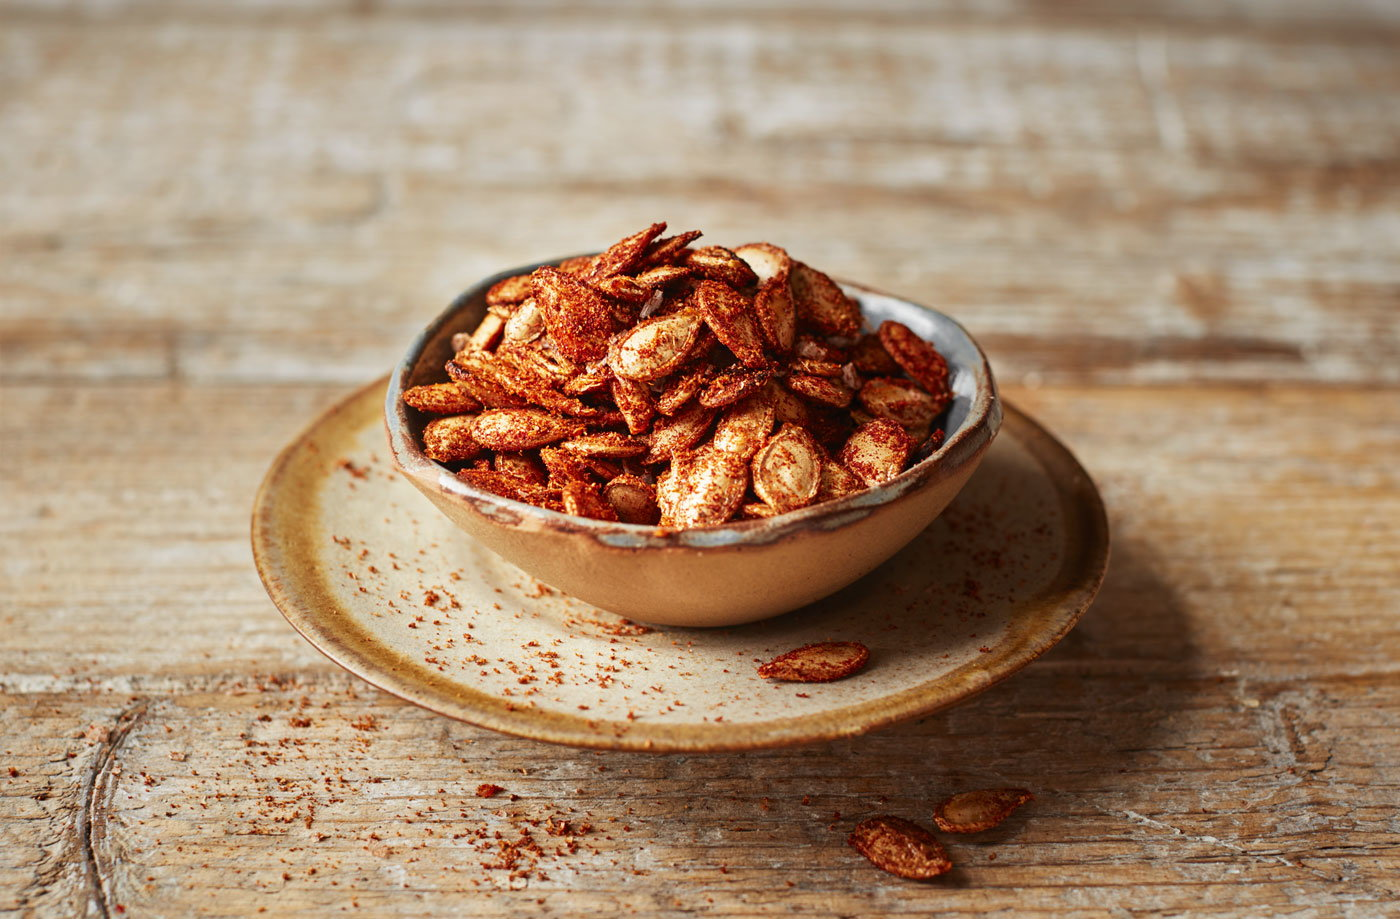 Spiced pumpkin seeds